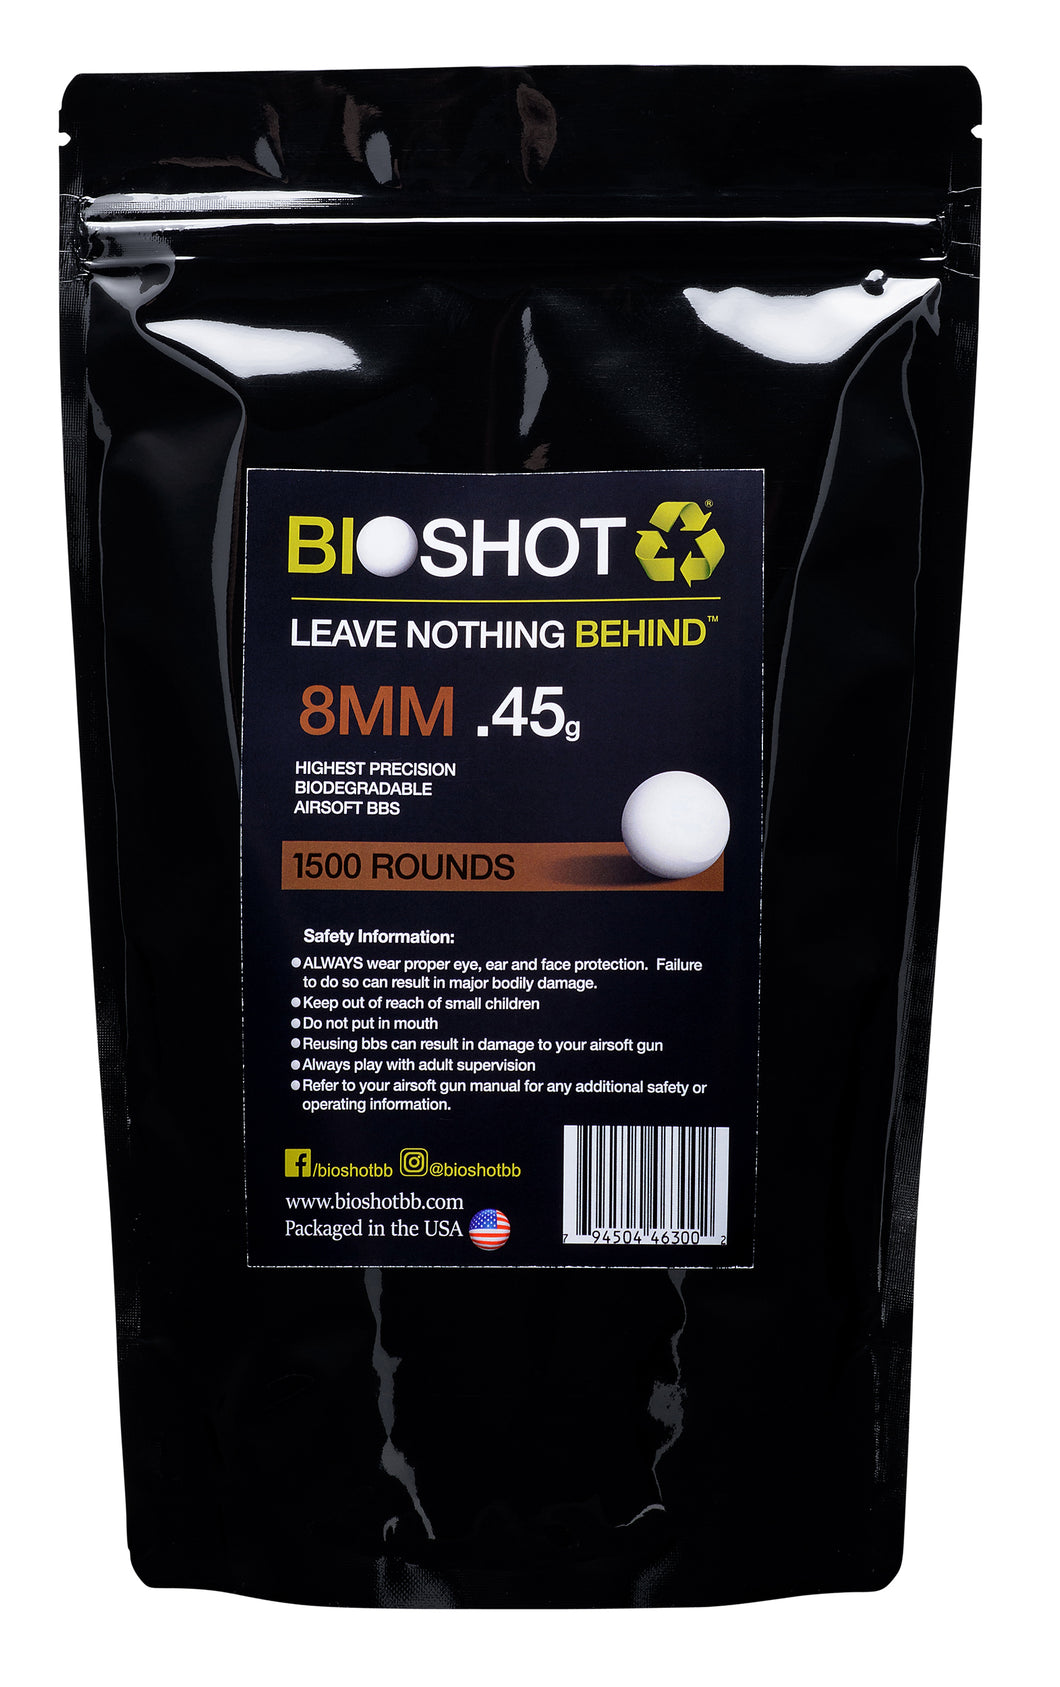 8mm .45g Biodegradable Airsoft BBs (1500 rounds White)